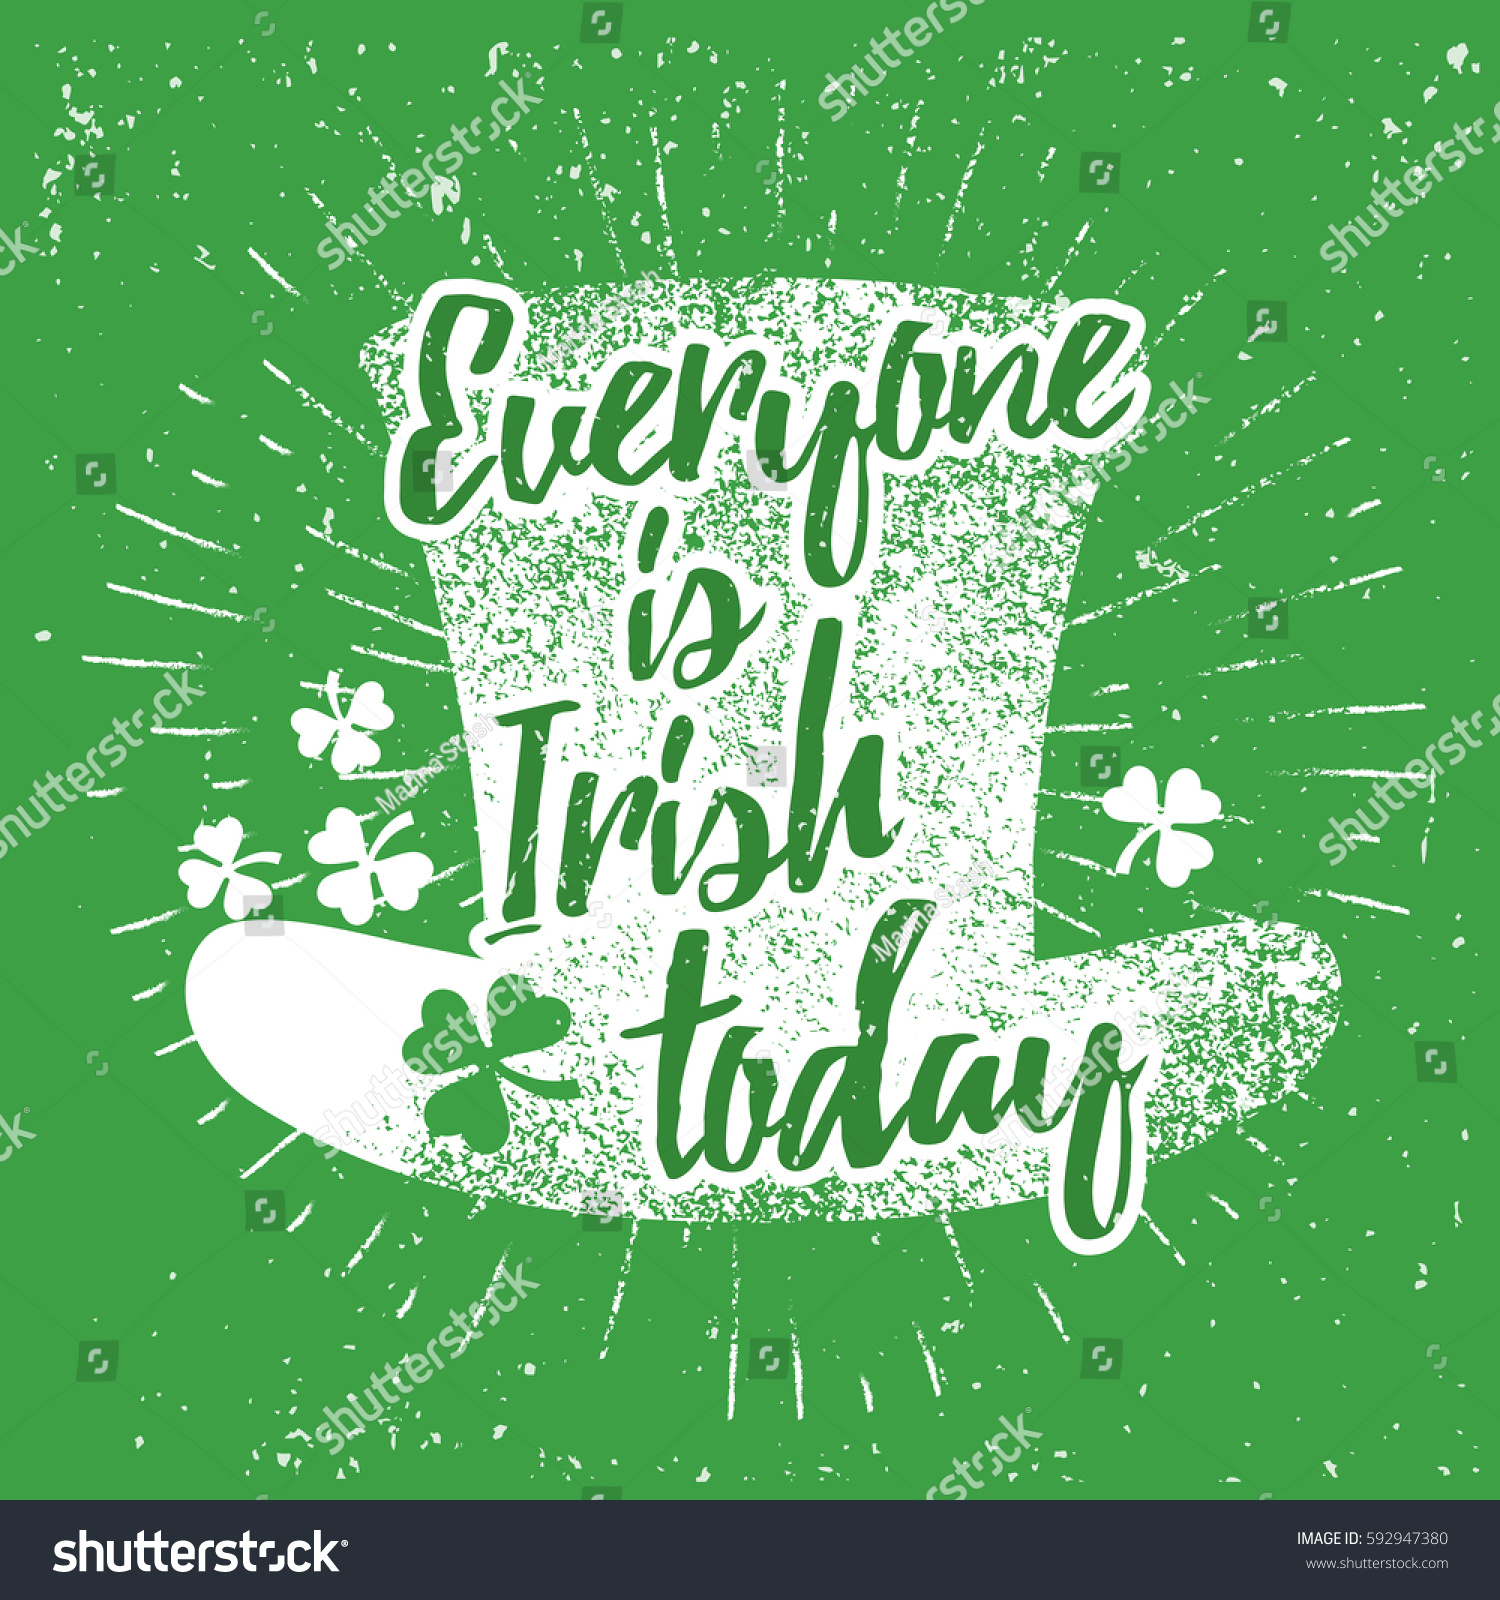 St patricks day quote typography lettering stock vector 592947380 st patricks day quote typography lettering greeting card template on a grunge texture green shape kristyandbryce Images